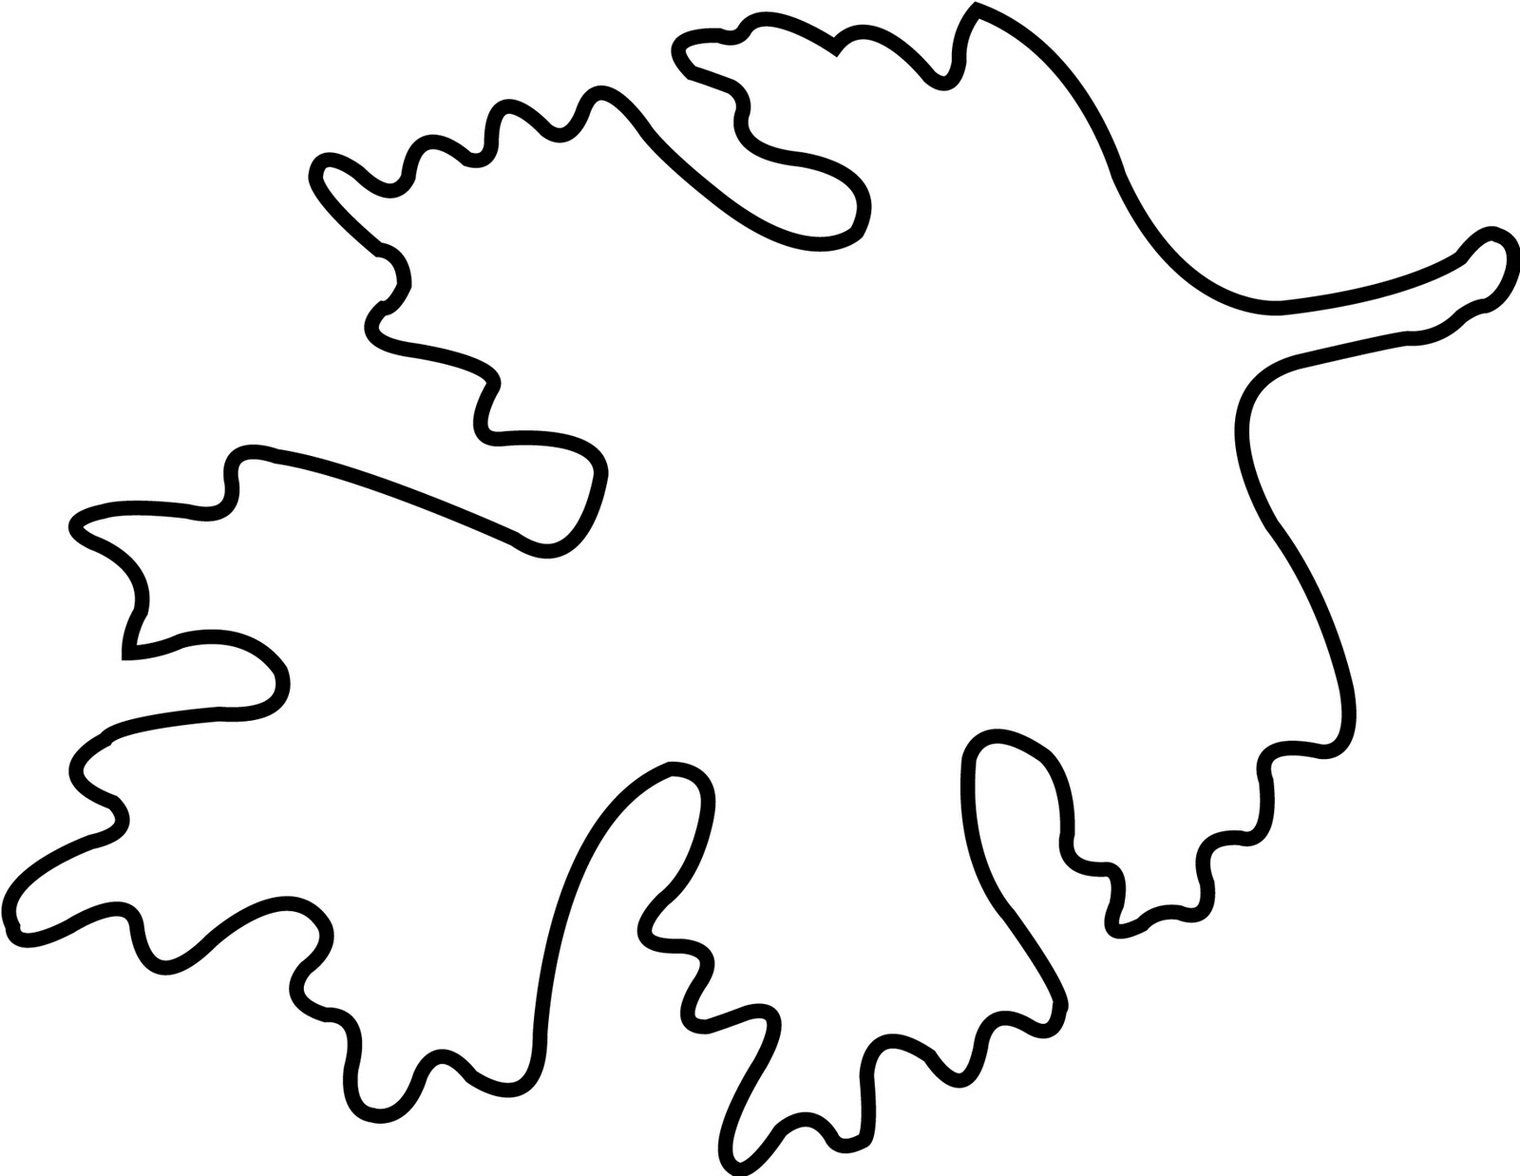 1520x1176 Oak Leaf Outline Printable Clipart Free To Use Clip Art Resource